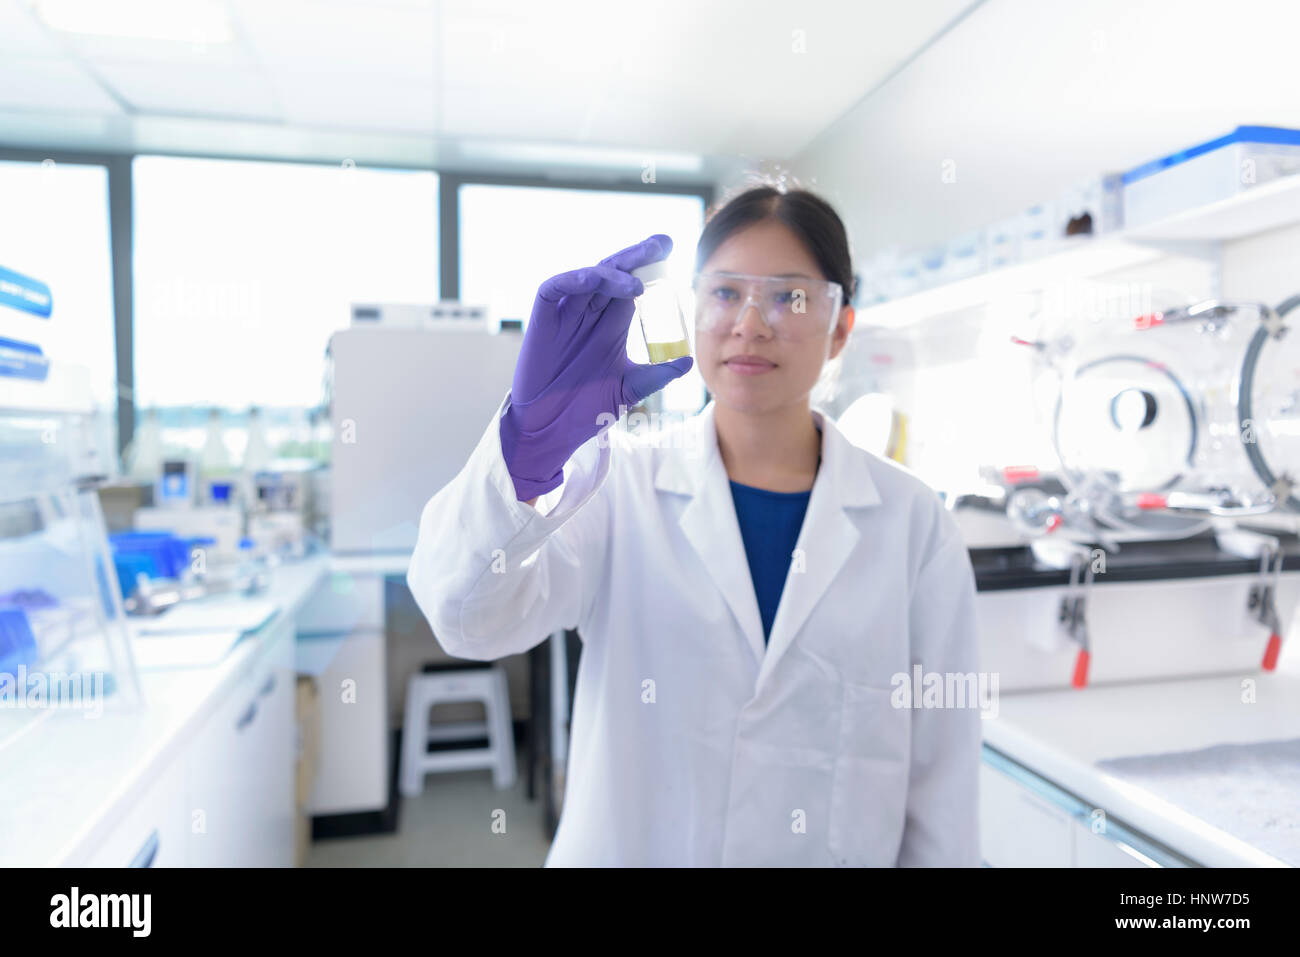 Scientist inspecting modified crystal shape material in crystal engineering research laboratory - Stock Image